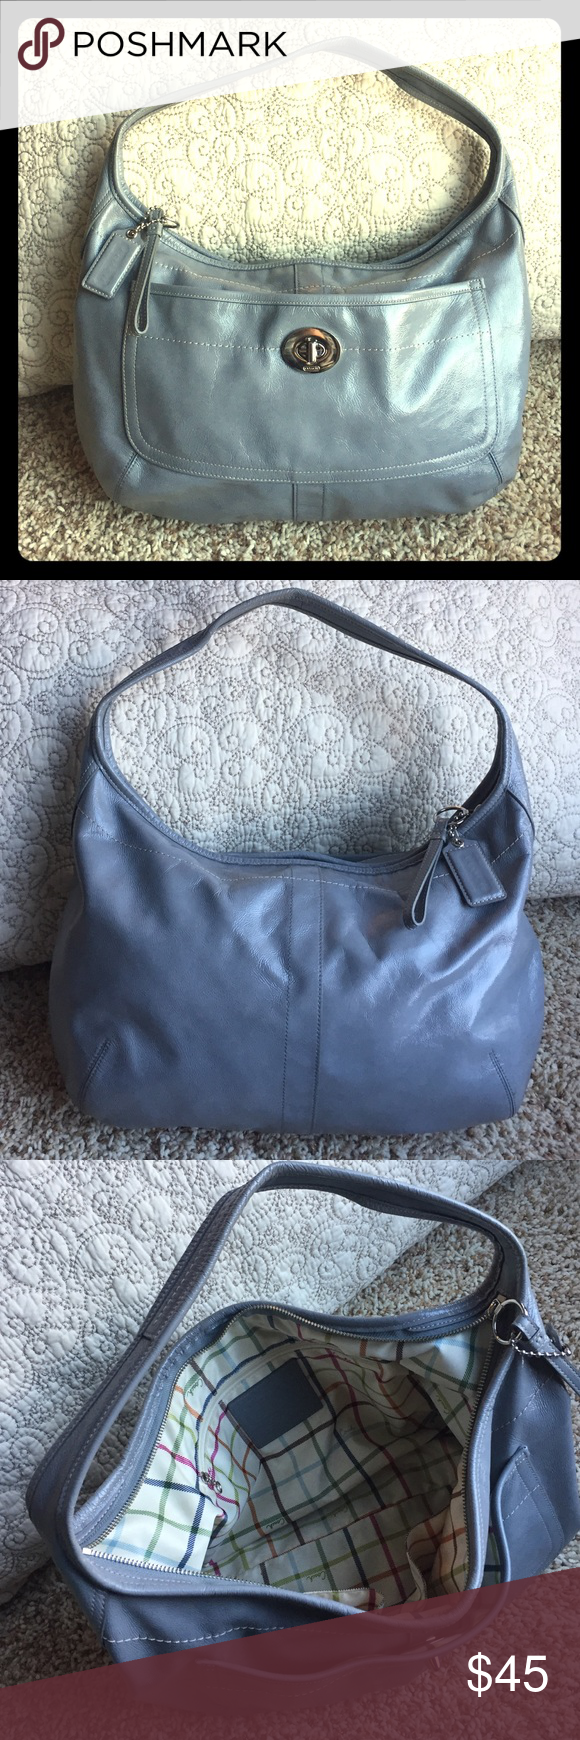 Coach Gray Patent Leather Purse Large Coach bag in grey. Cell phone pocket and two other pockets inside large interior. Coach Bags Shoulder Bags